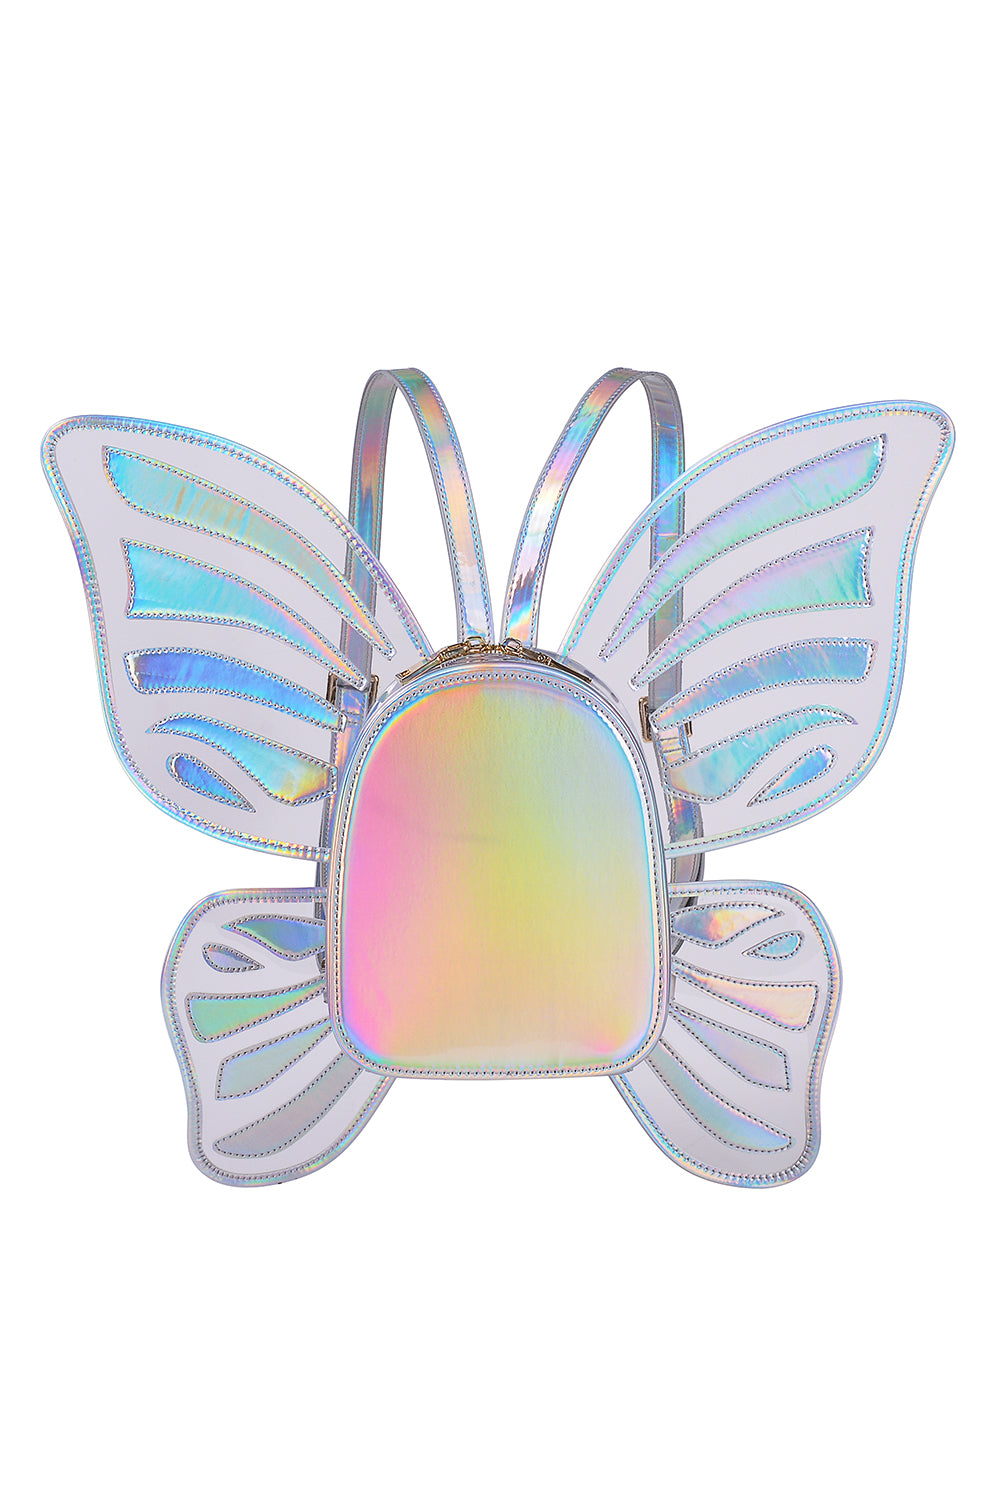 Festival Bag - Iridescent Butterfly Backpack